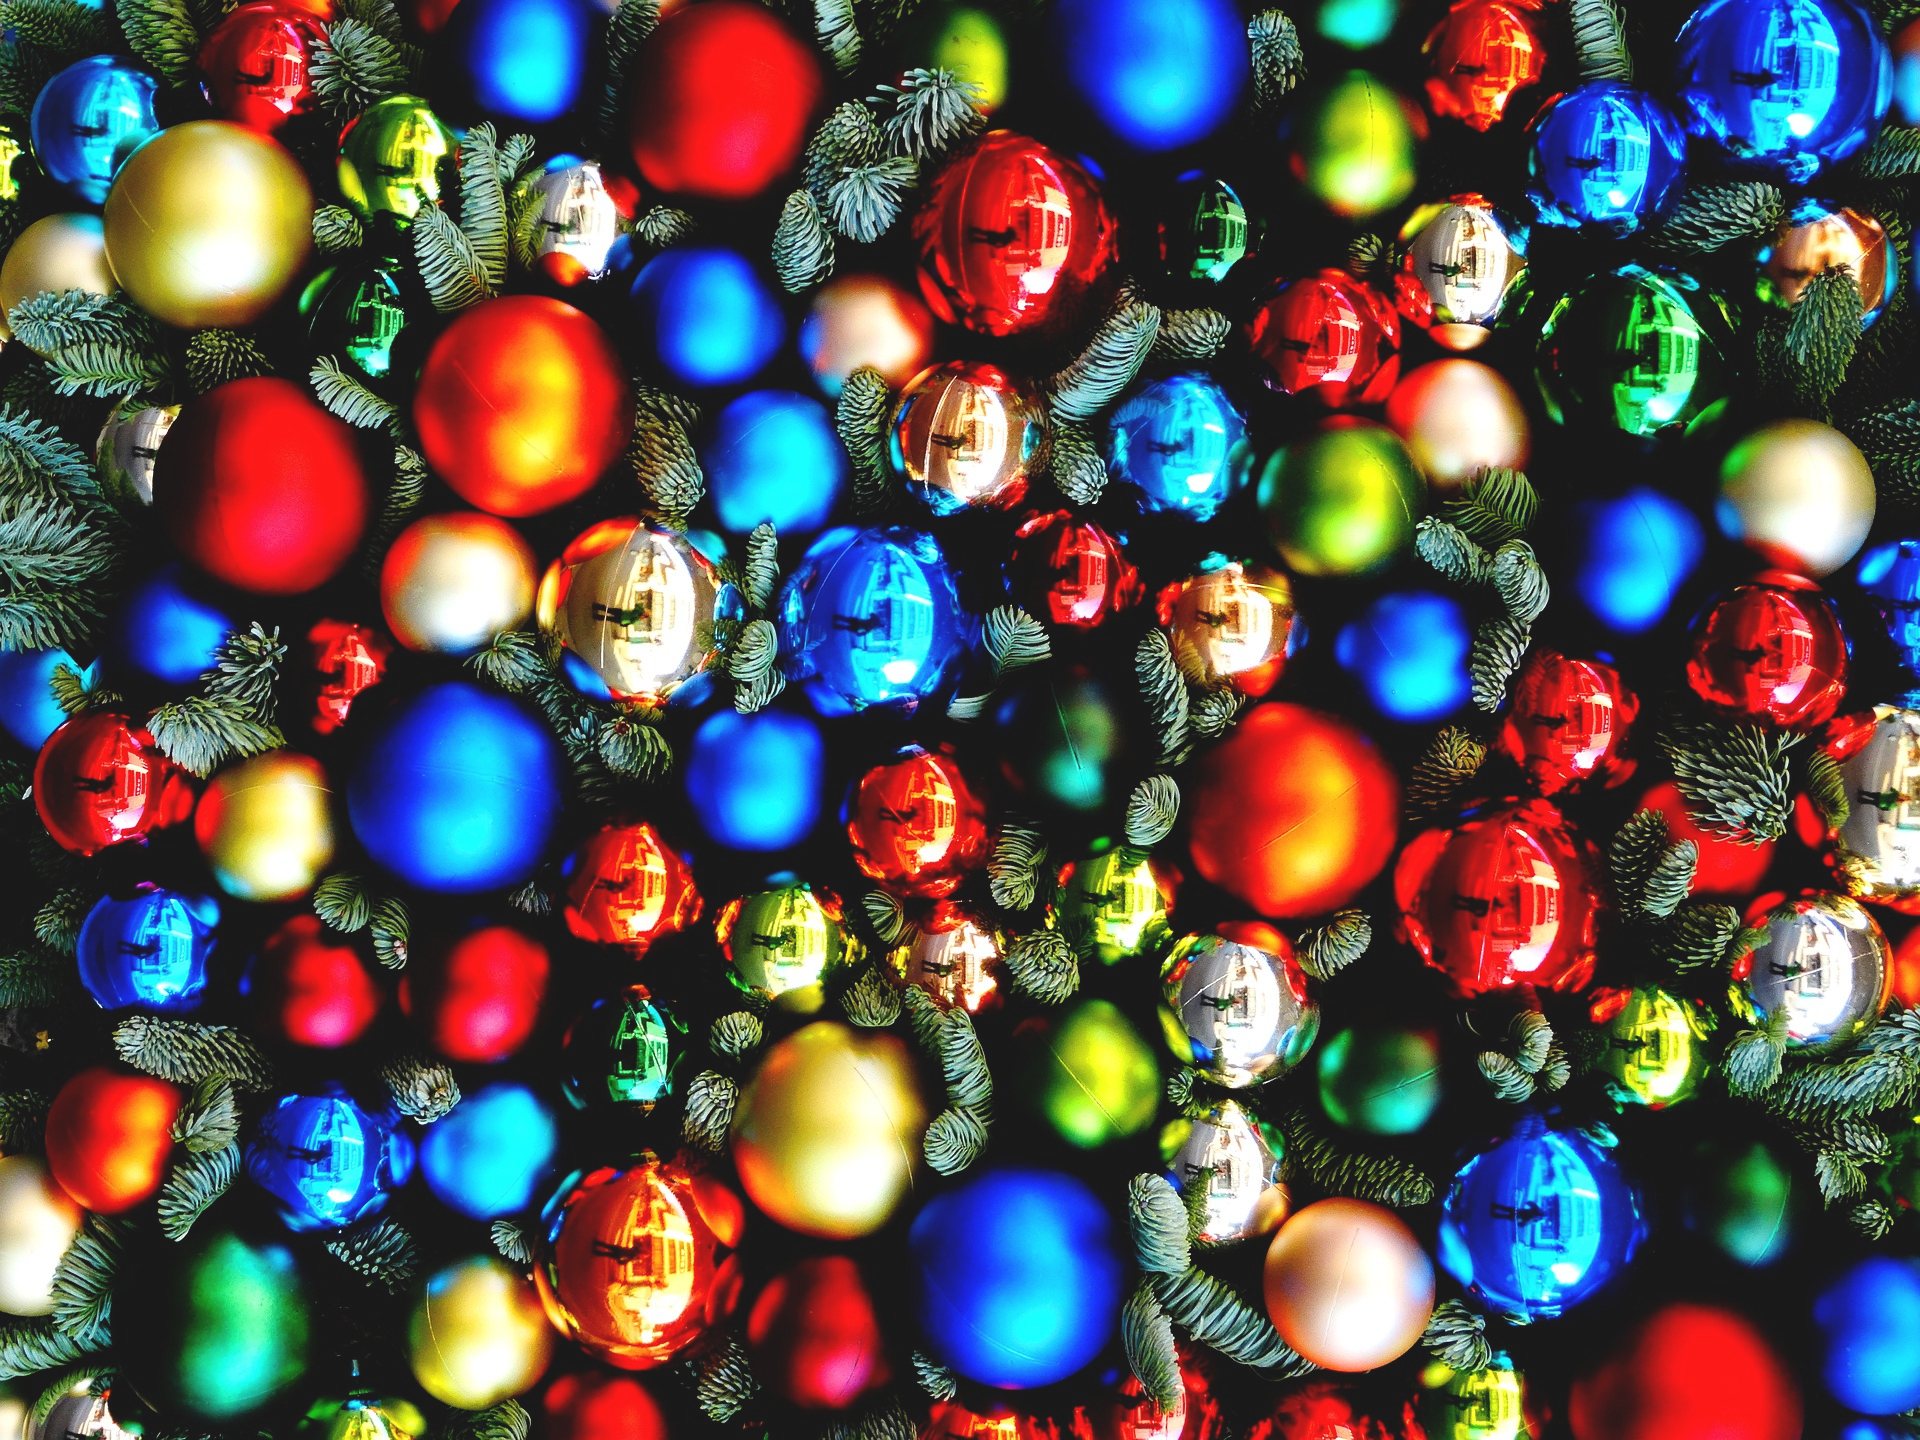 Santa Letter & Bauble Making - 2020 Christmas Events for the Family